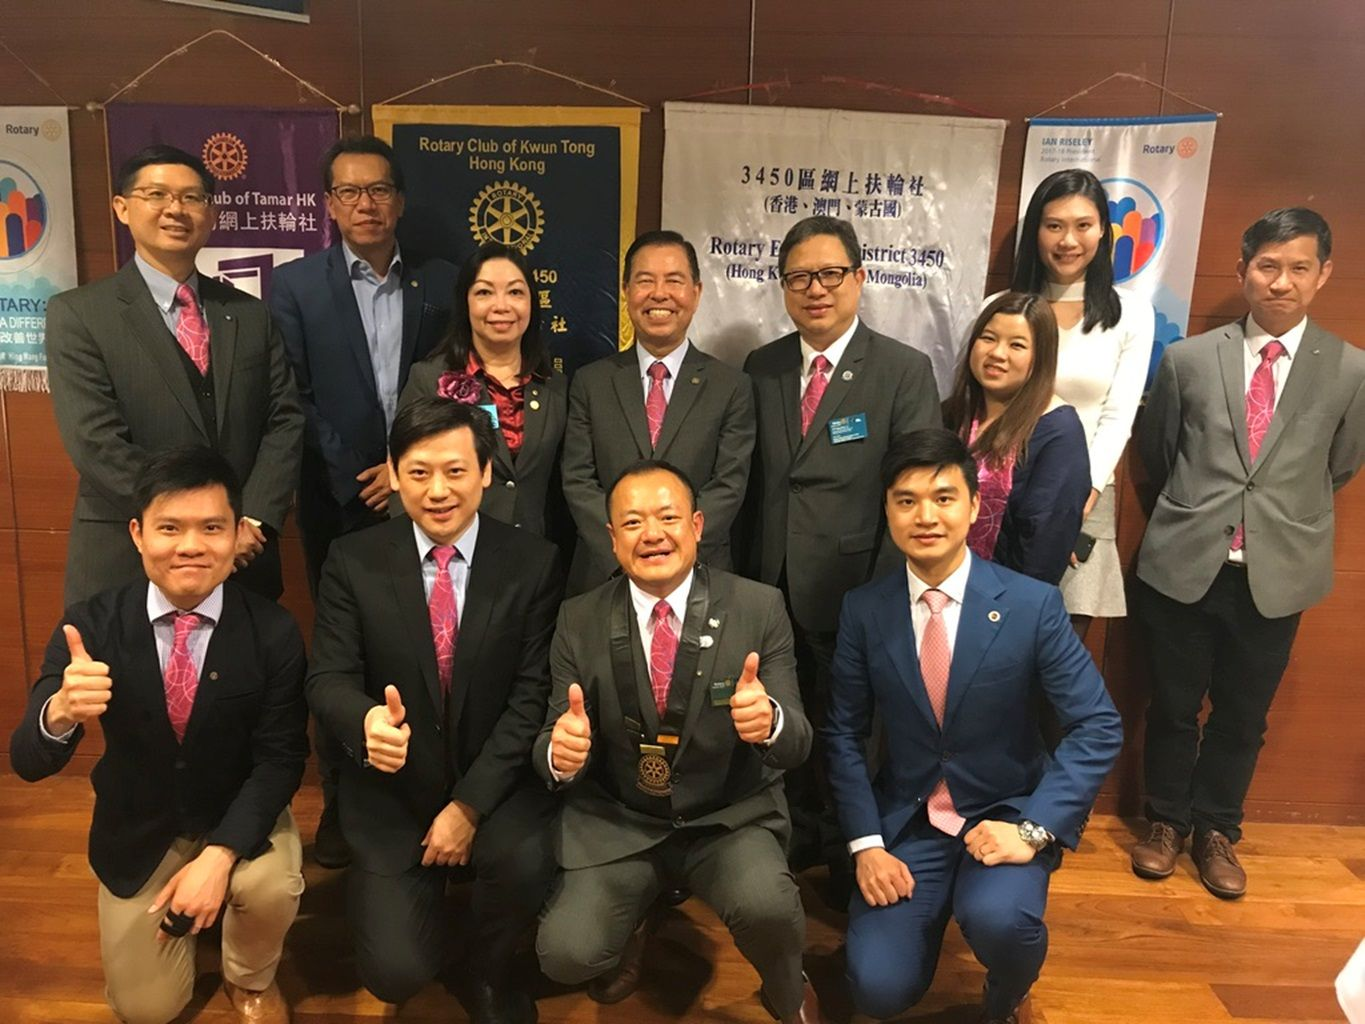 Joint District Governor's Visit